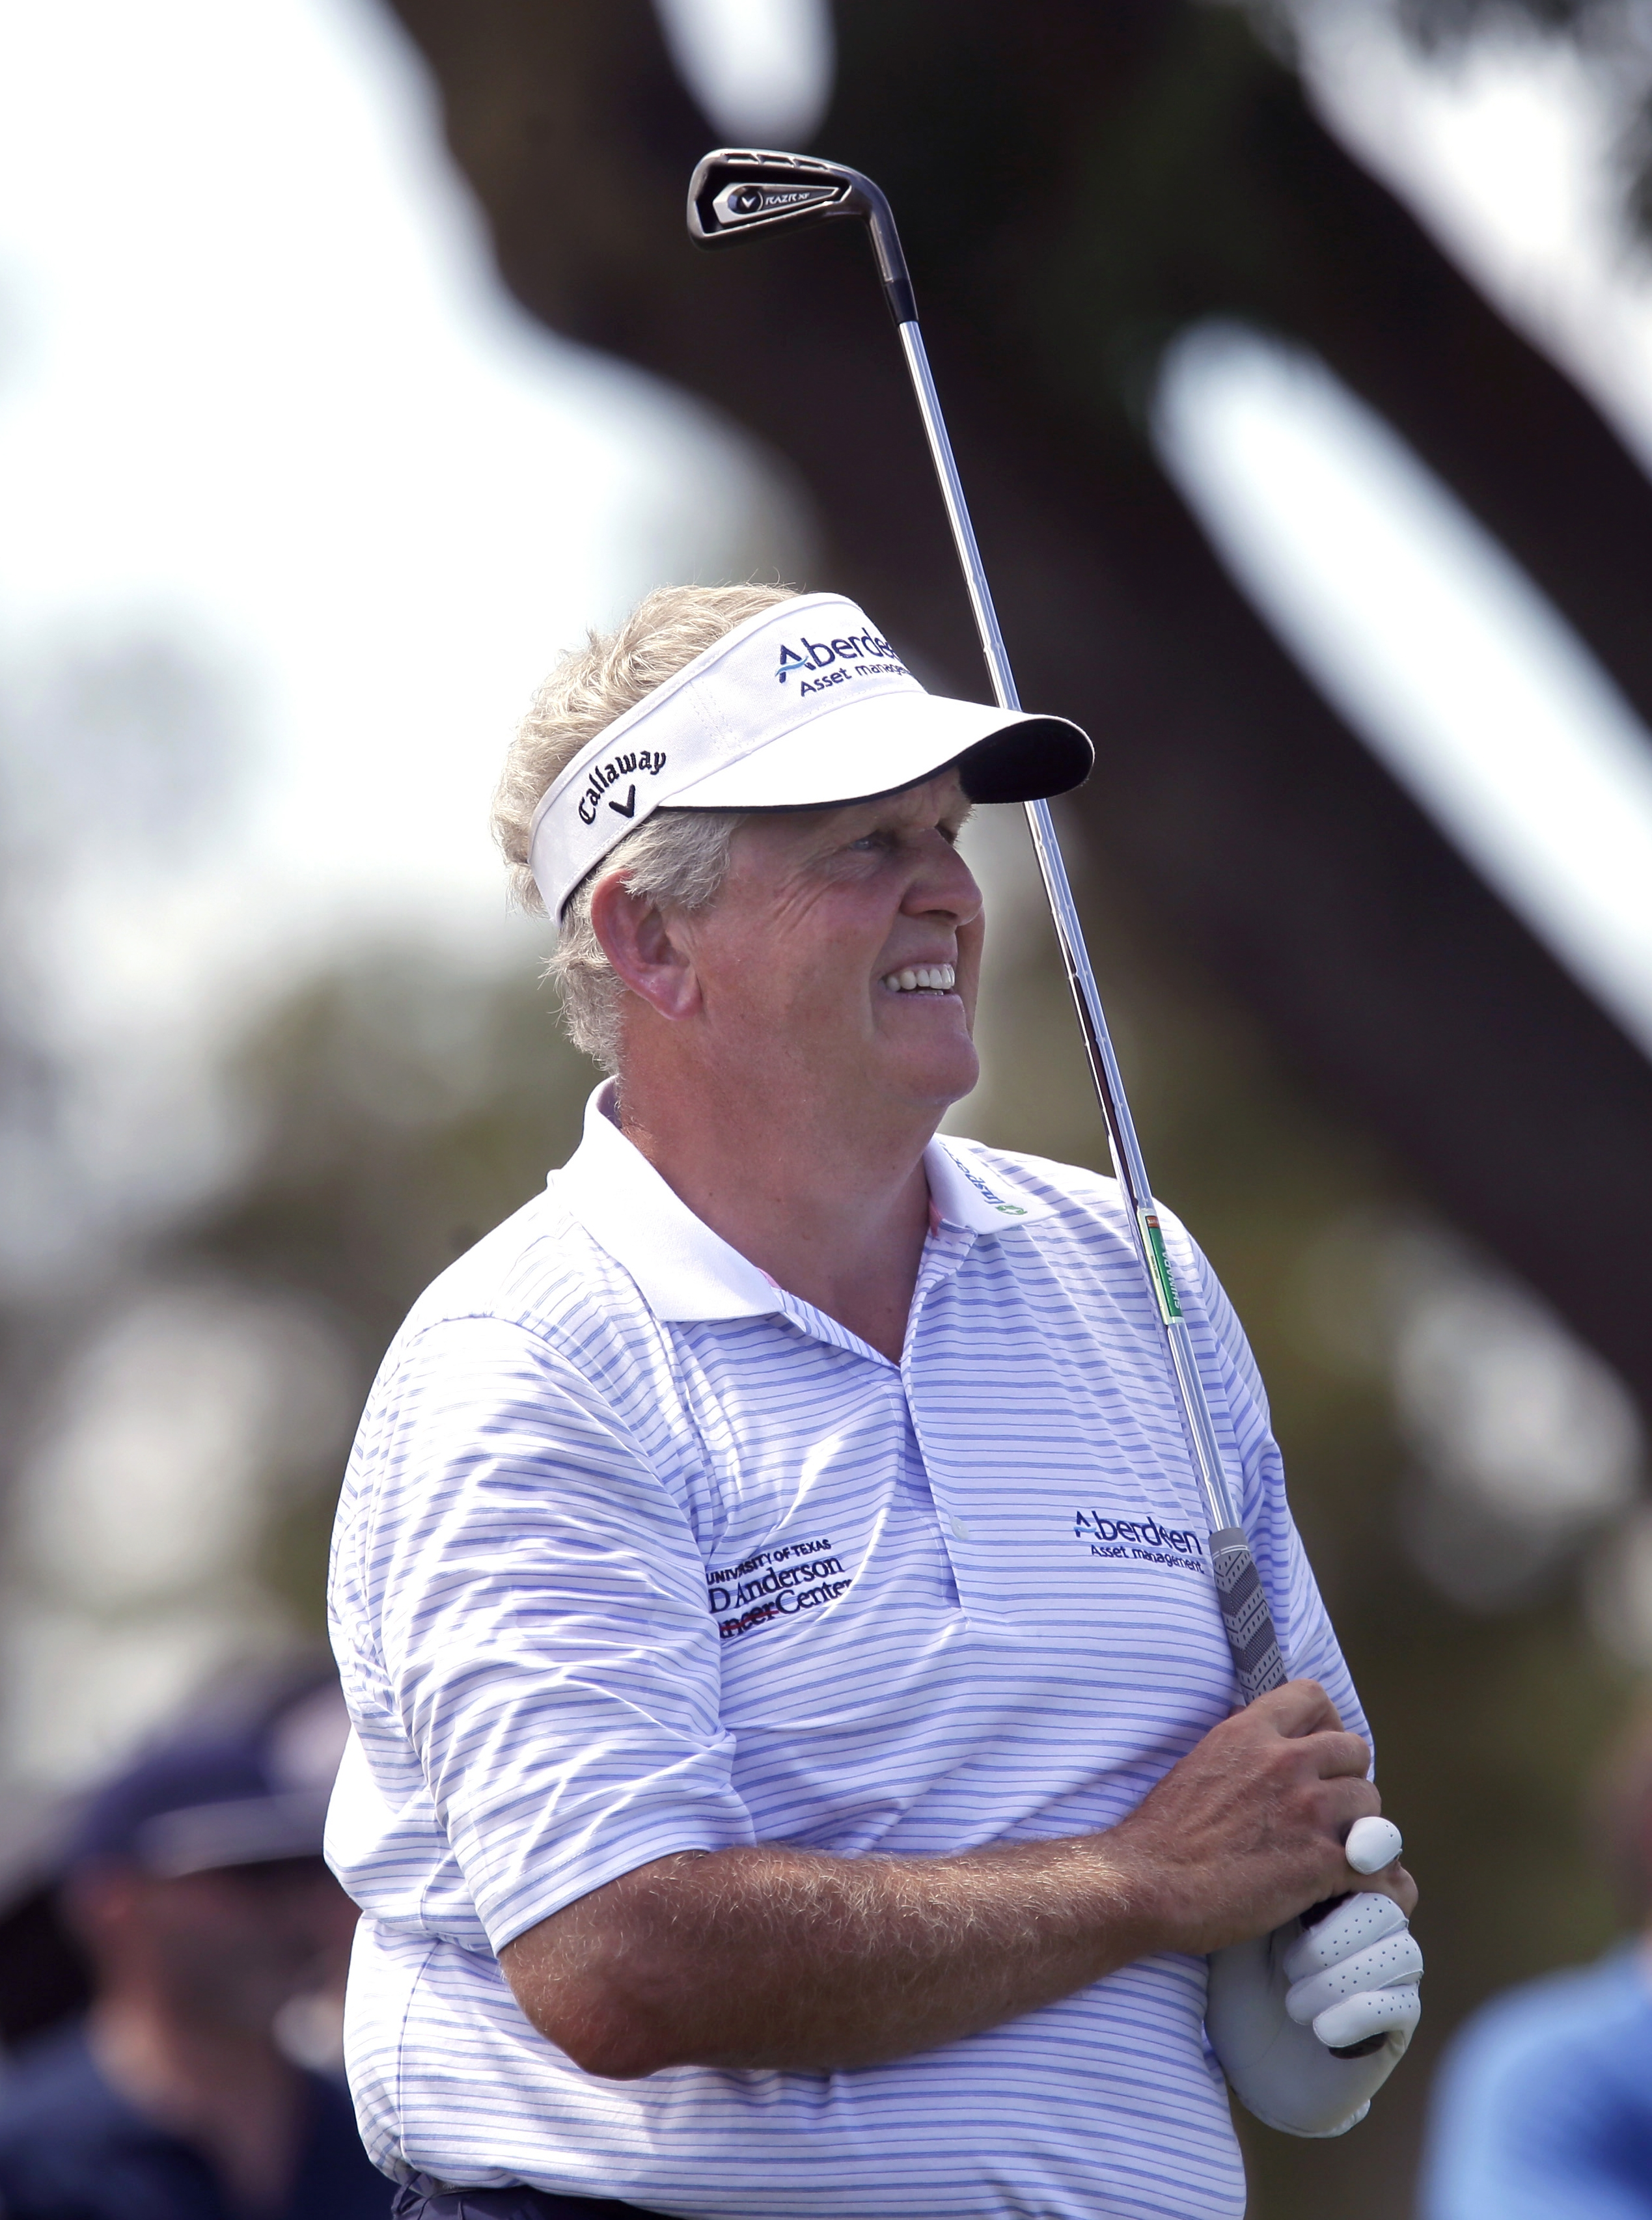 Colin Montgomerie, of Scotland, watches his shot in the final round of the U.S. Senior Open golf tournament at the Del Paso Country Club in Sacramento, Calif., Sunday, June 28, 2015.(AP Photo/Rich Pedroncelli)